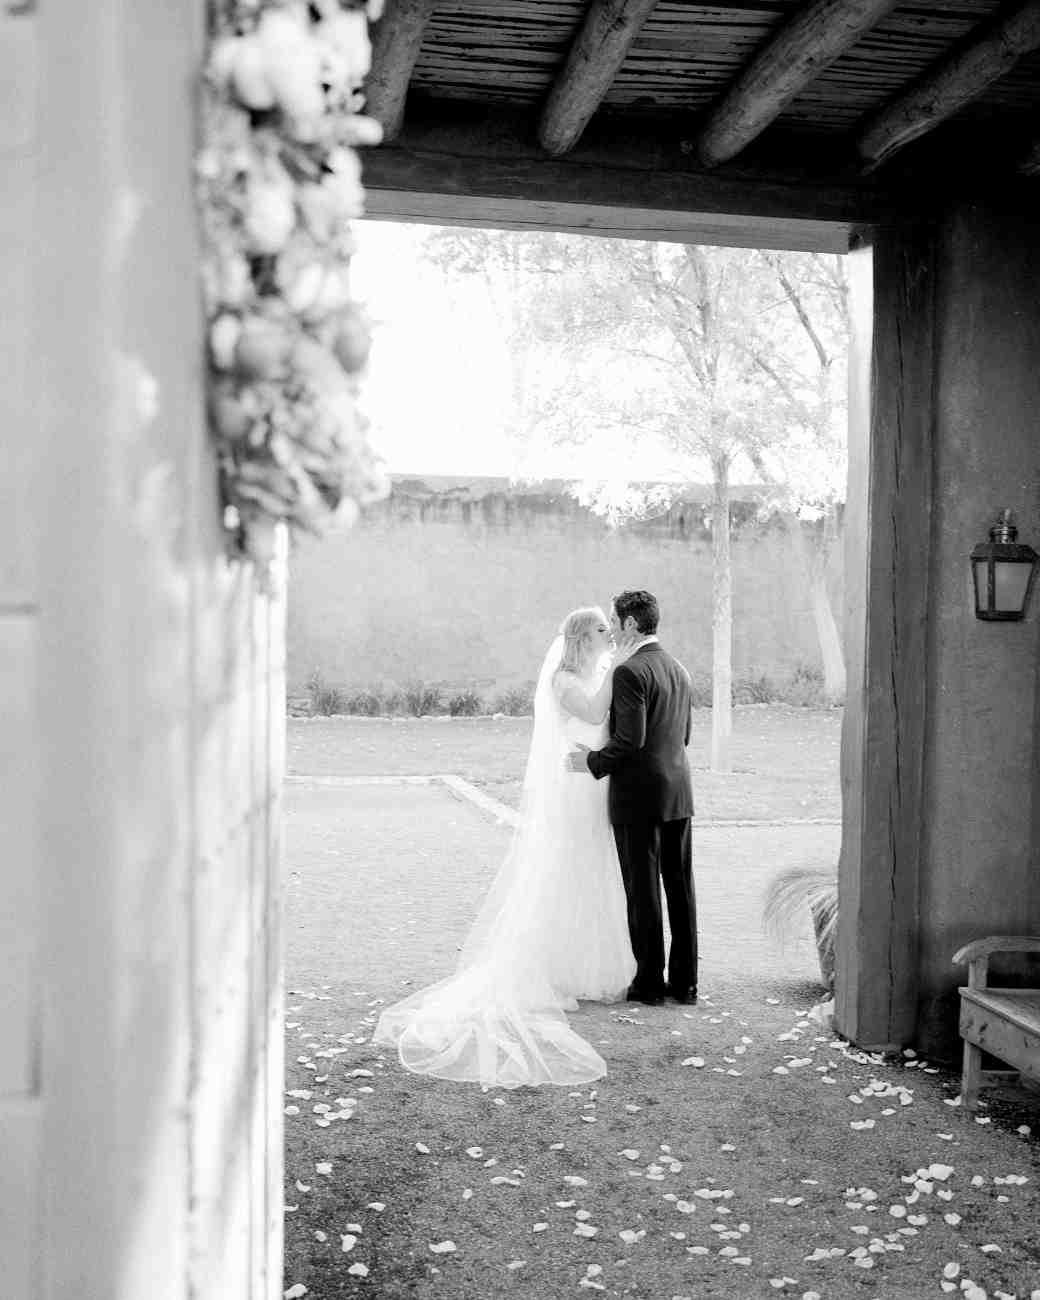 amanda-marty-wedding-marfa-texas-0768-s112329-1115_vert.jpg